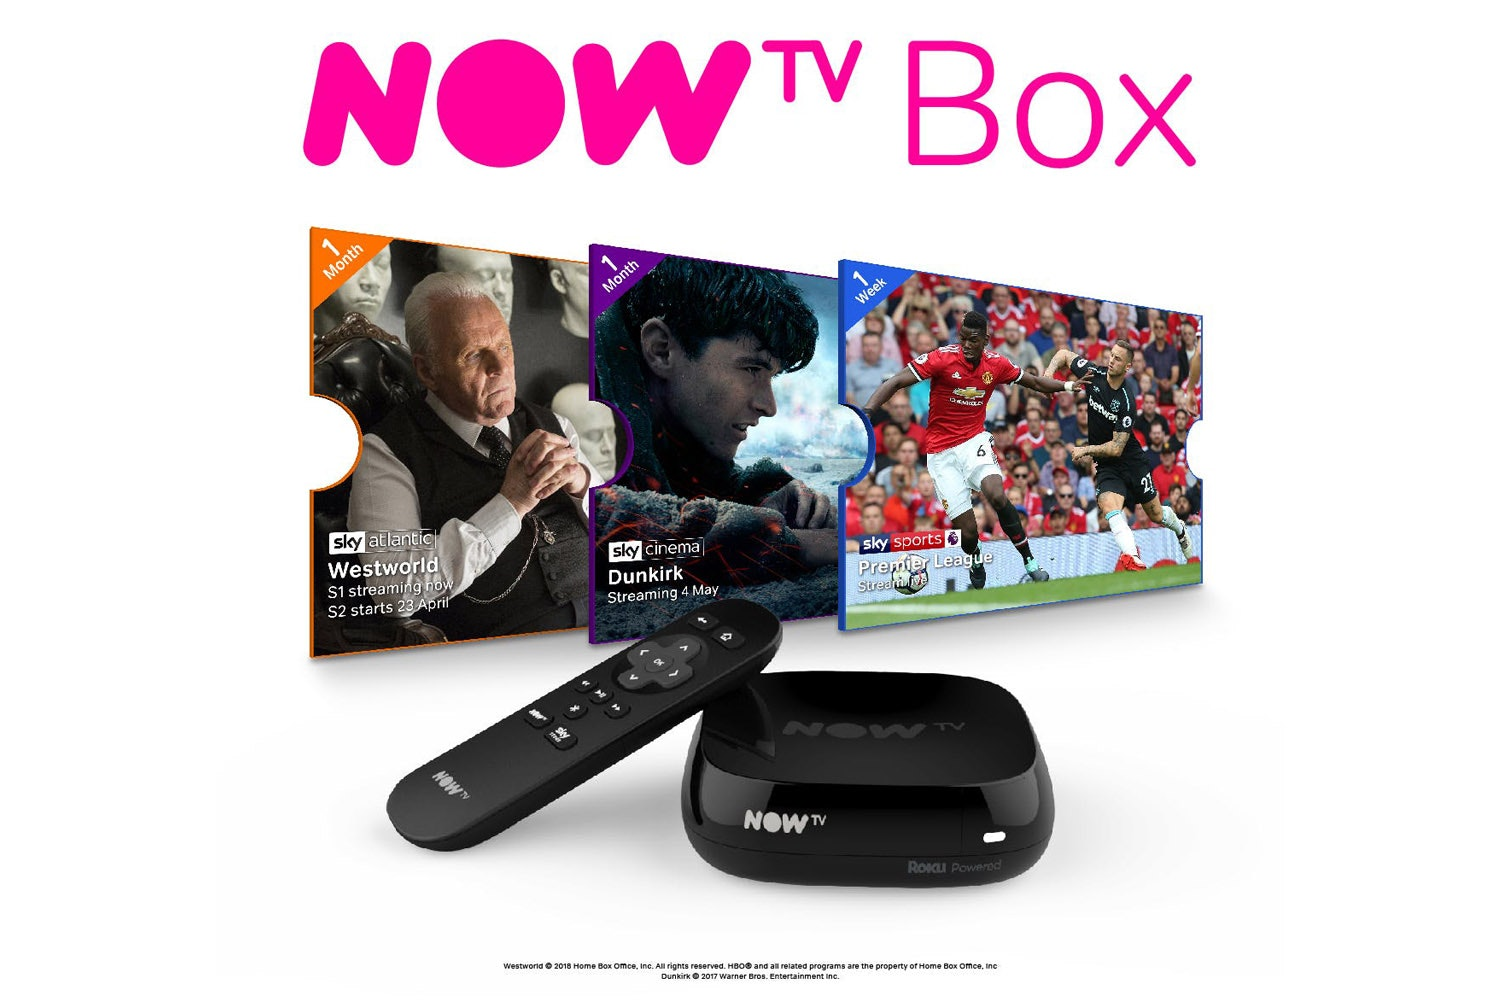 NOW TV Box With 1 Month Entertainment, Sky Cinema and Sky Sports Passes